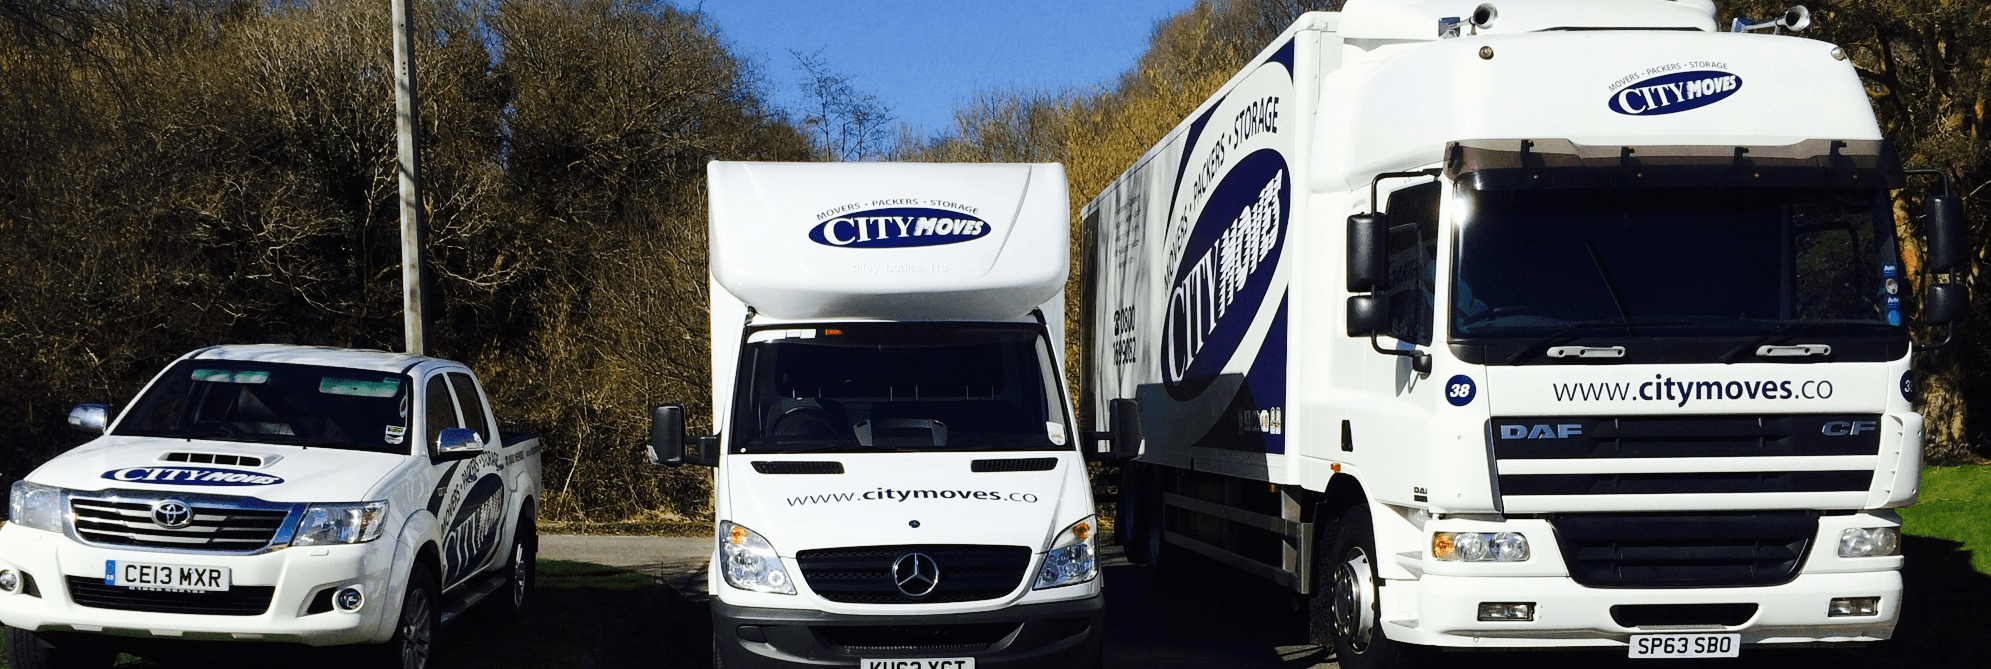 City Moves Removals and Storage, local removals, national removals, international removals, worldwide removals, storage and packing services